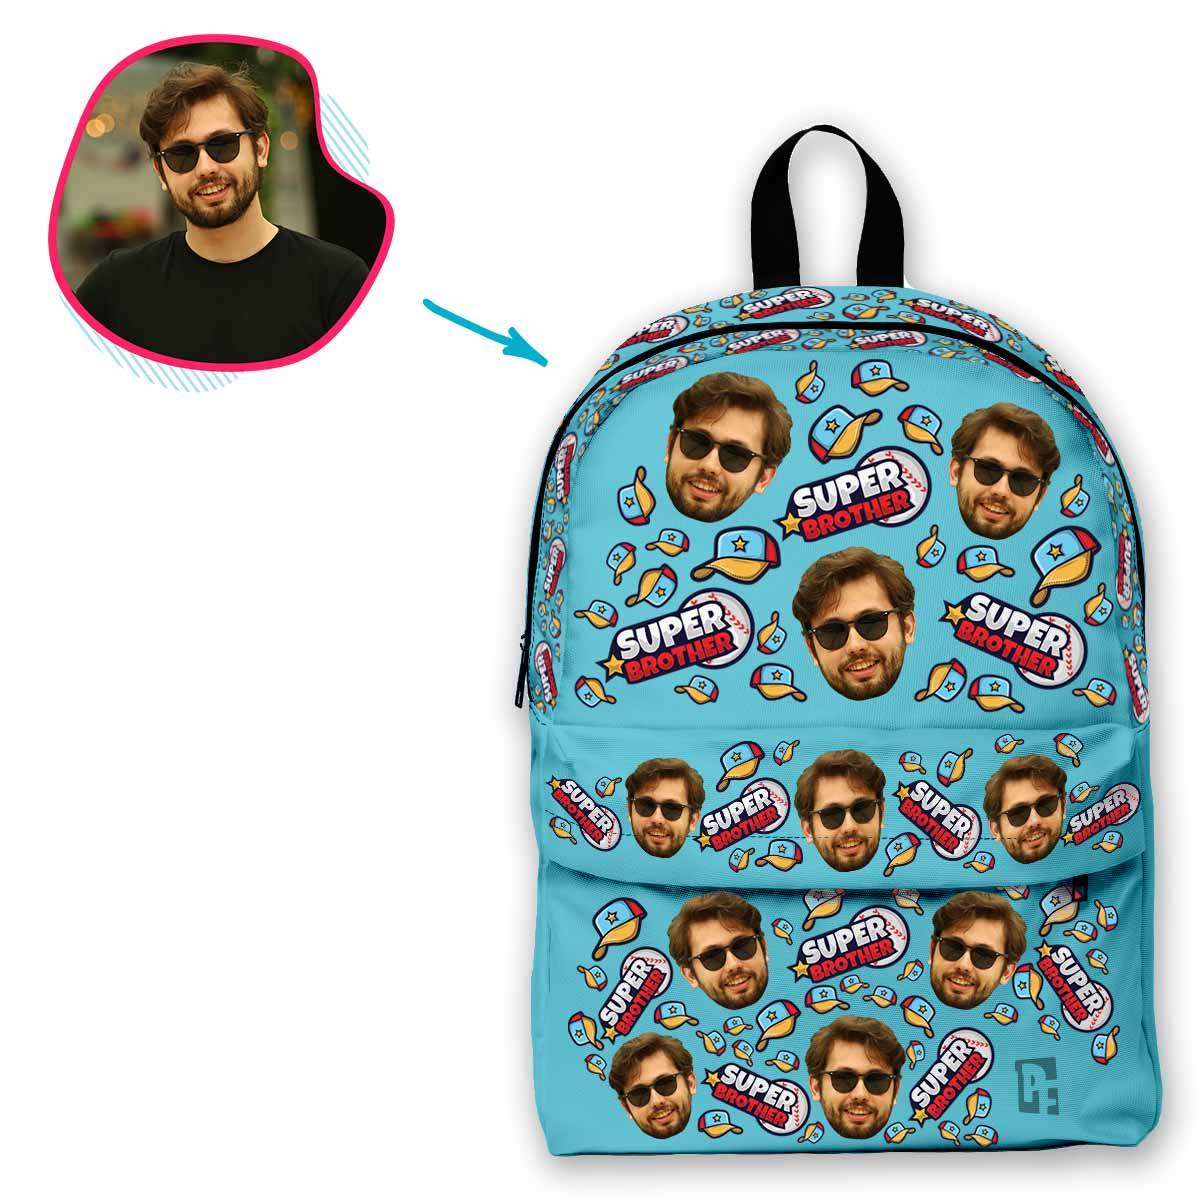 blue Super Brother classic backpack personalized with photo of face printed on it